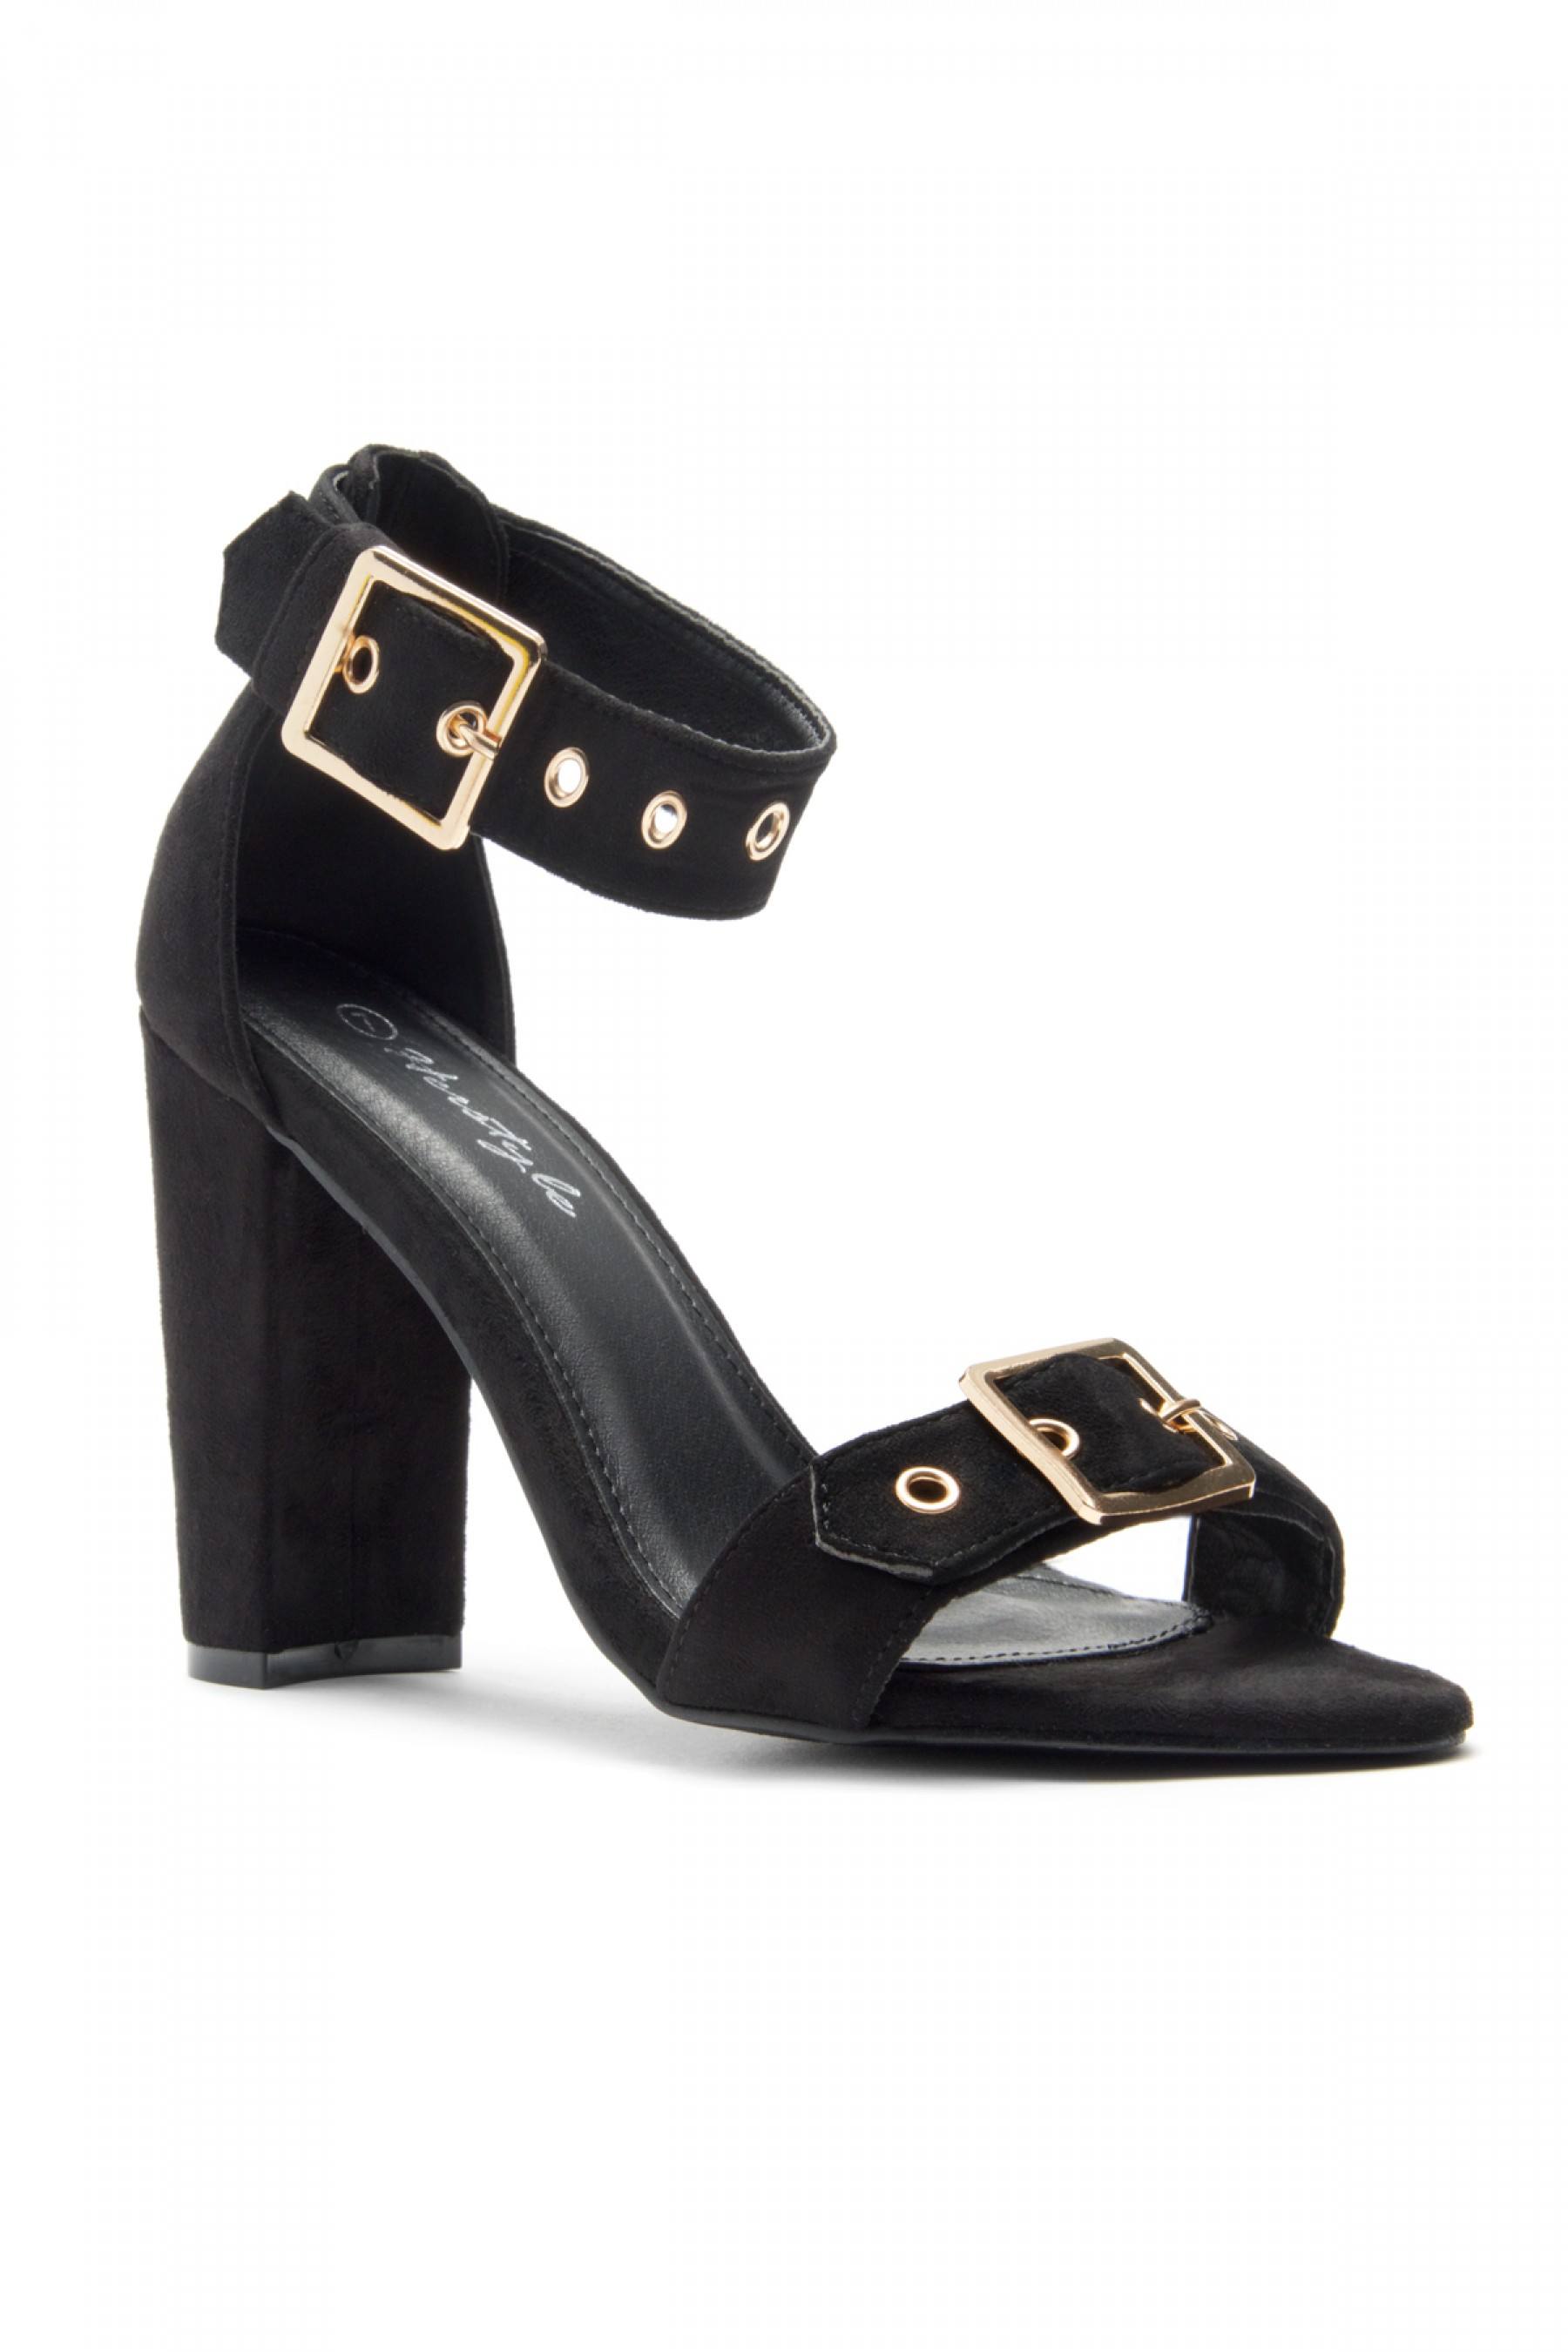 HerStyle Loyal Suede Ankle Strap, Buckled, Open Toe, Chunky Heel (Black)